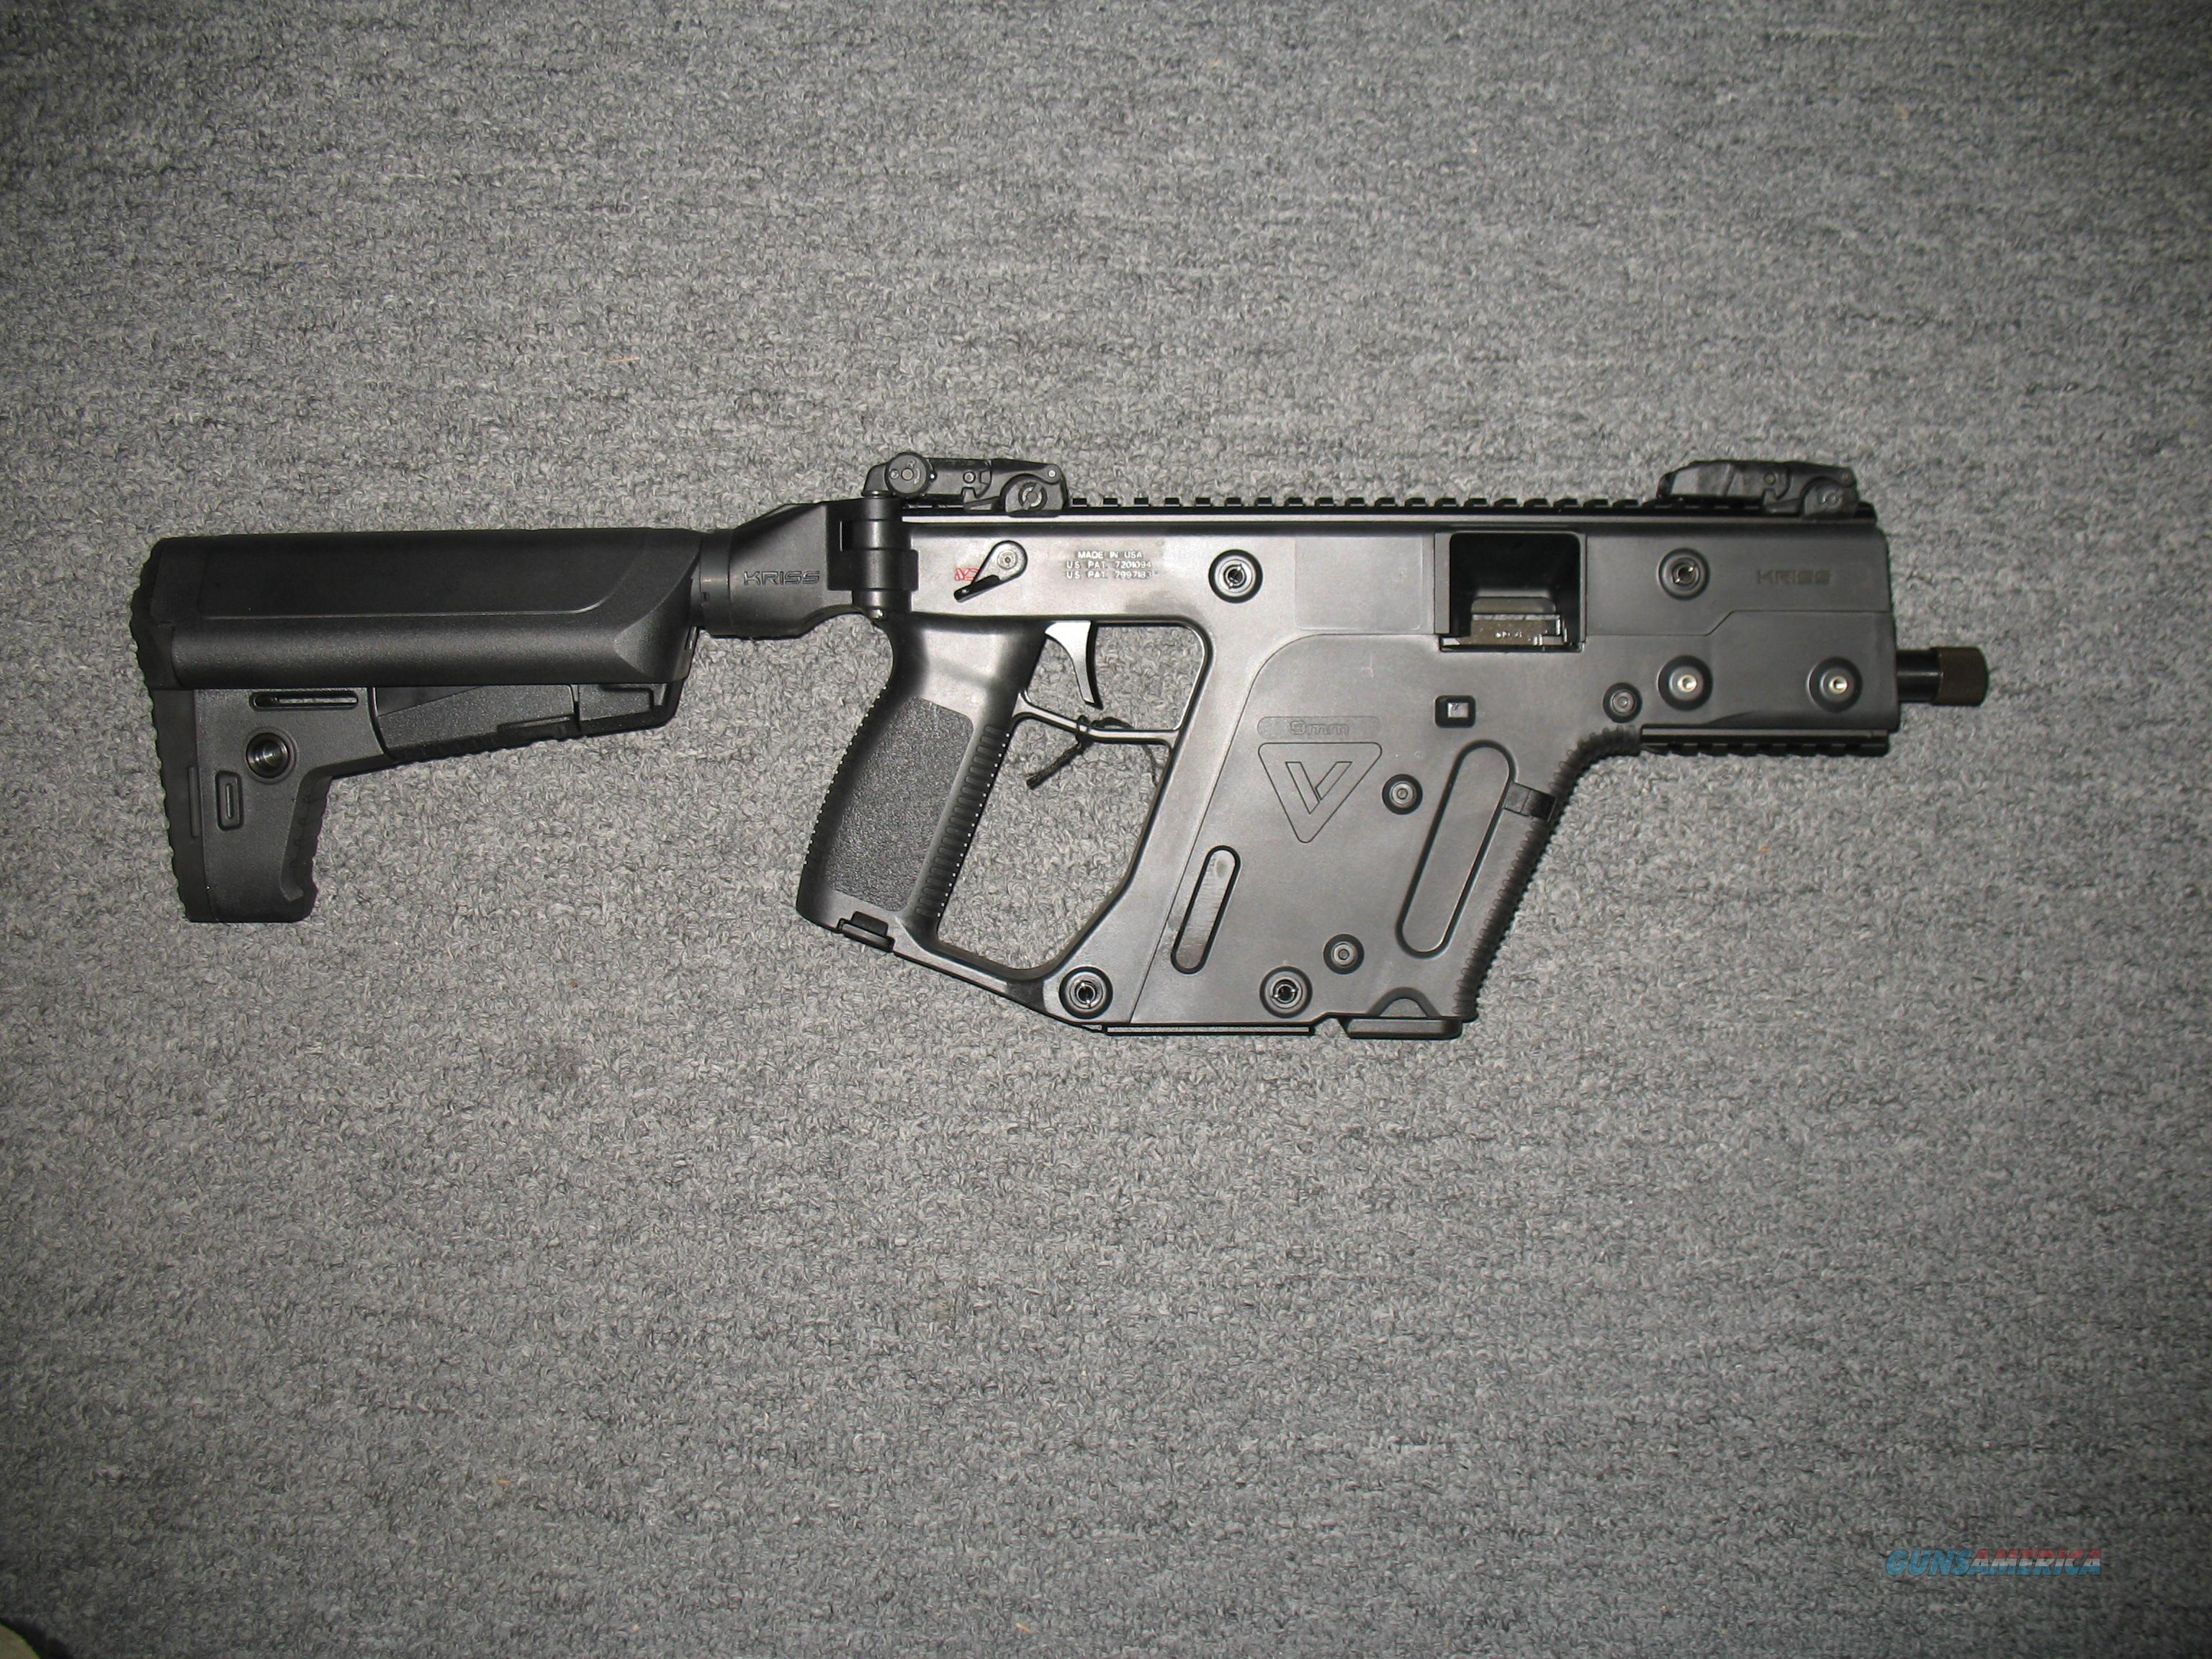 "KRISS Vector SBR black Finish 5.5"" threaded bbl 9mm  Guns > Rifles > Class 3 Rifles > Class 3 Any Other Weapon"